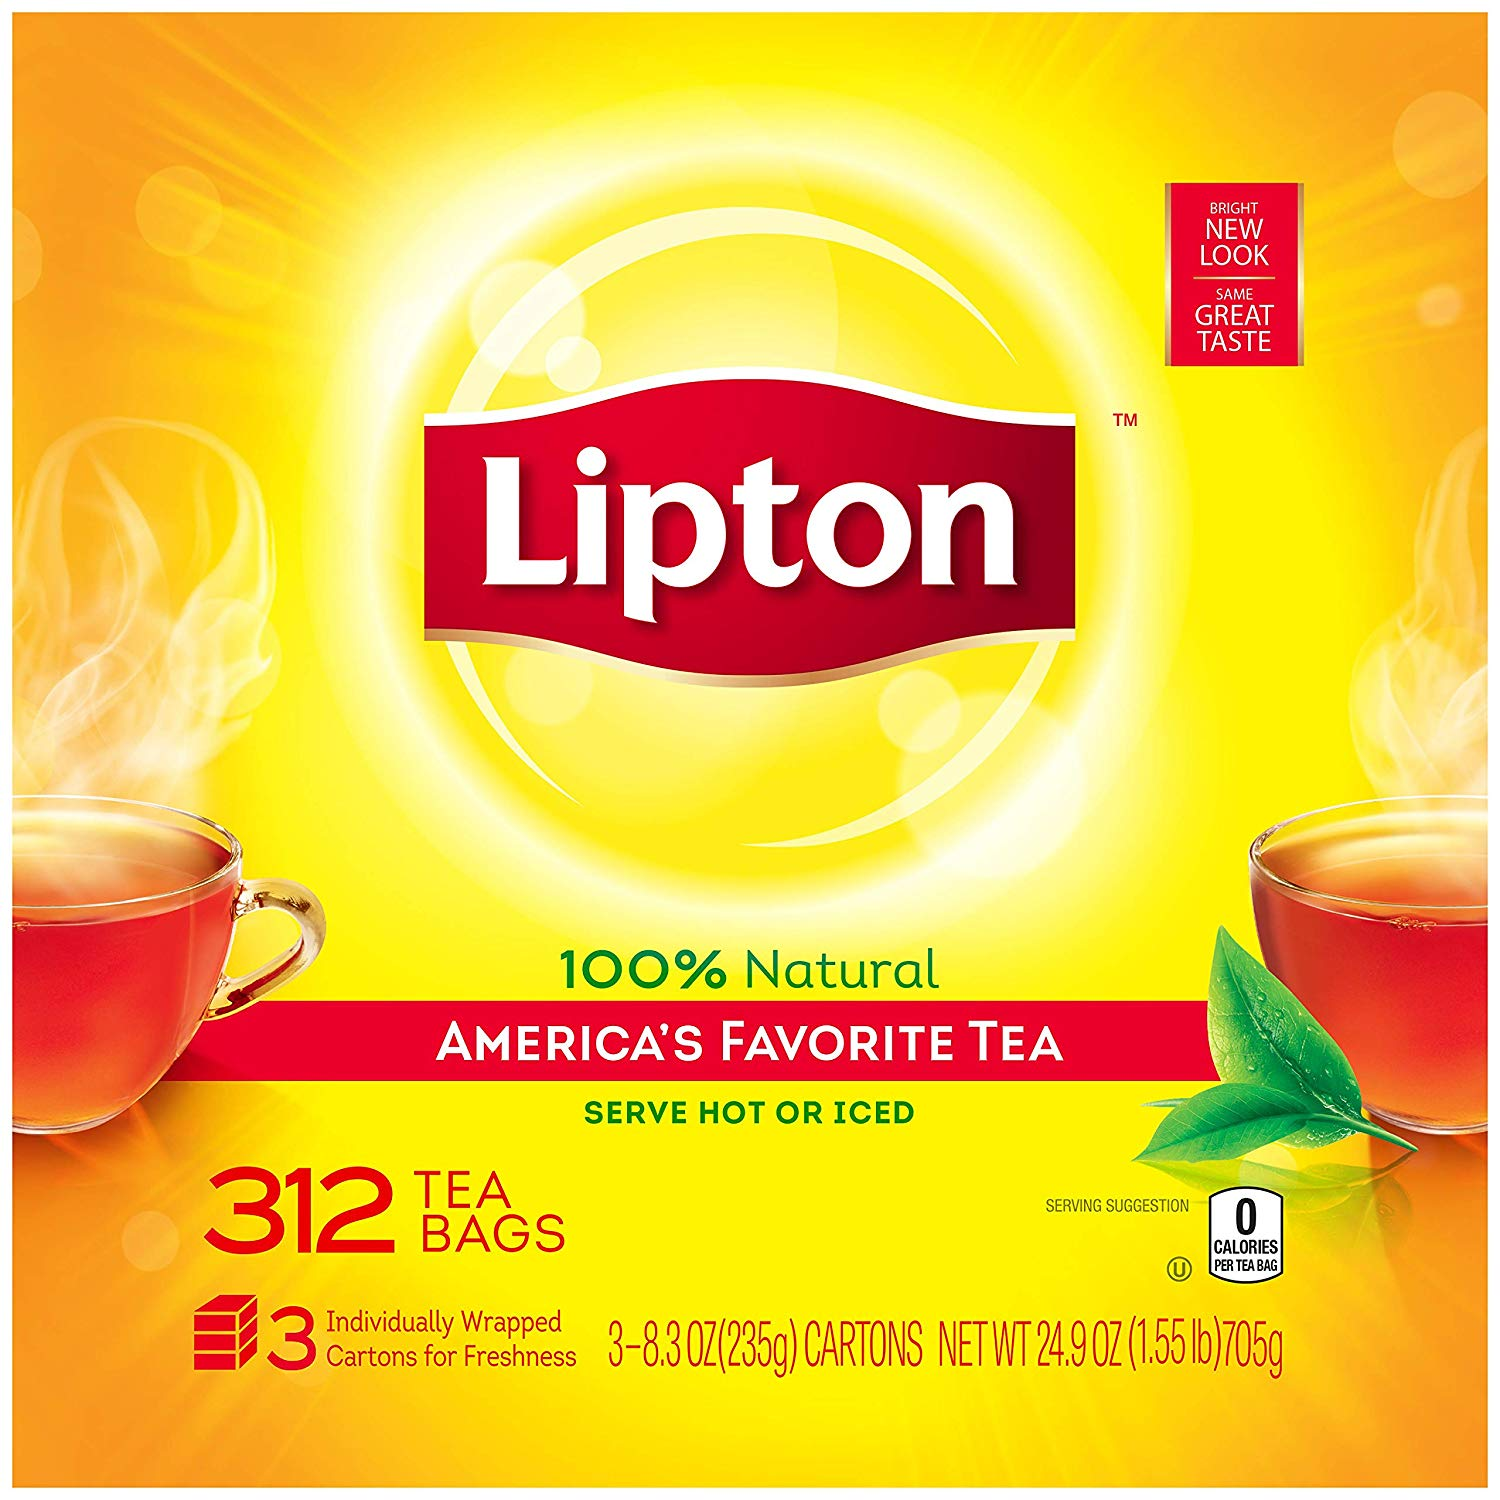 Lipton sweet tea bags